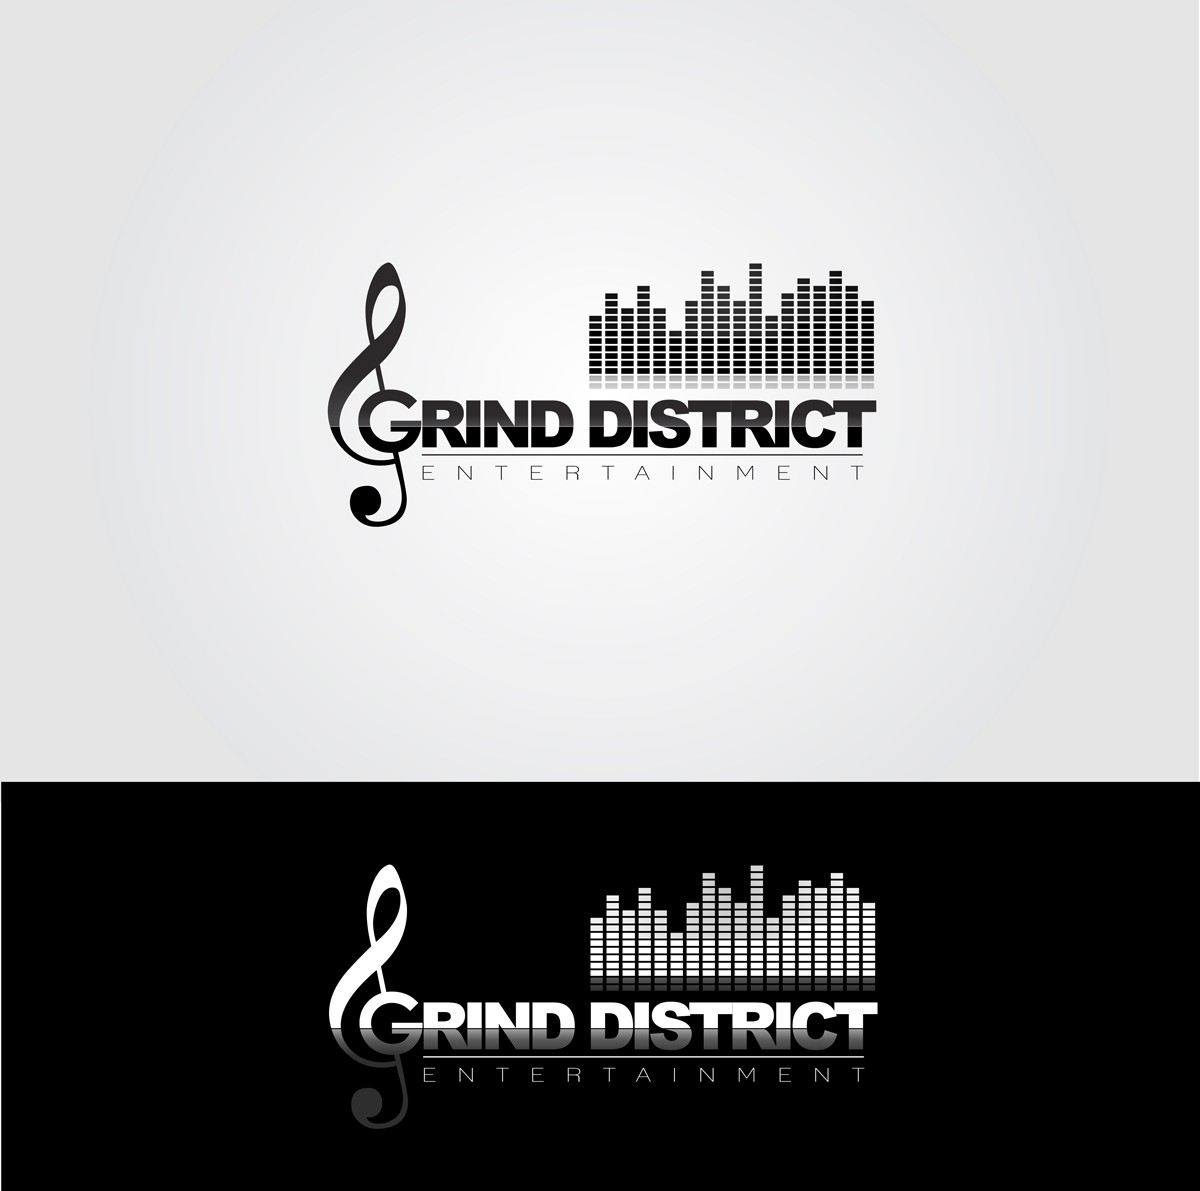 GRIND DISTRICT ENTERTAINMENT needs a new logo